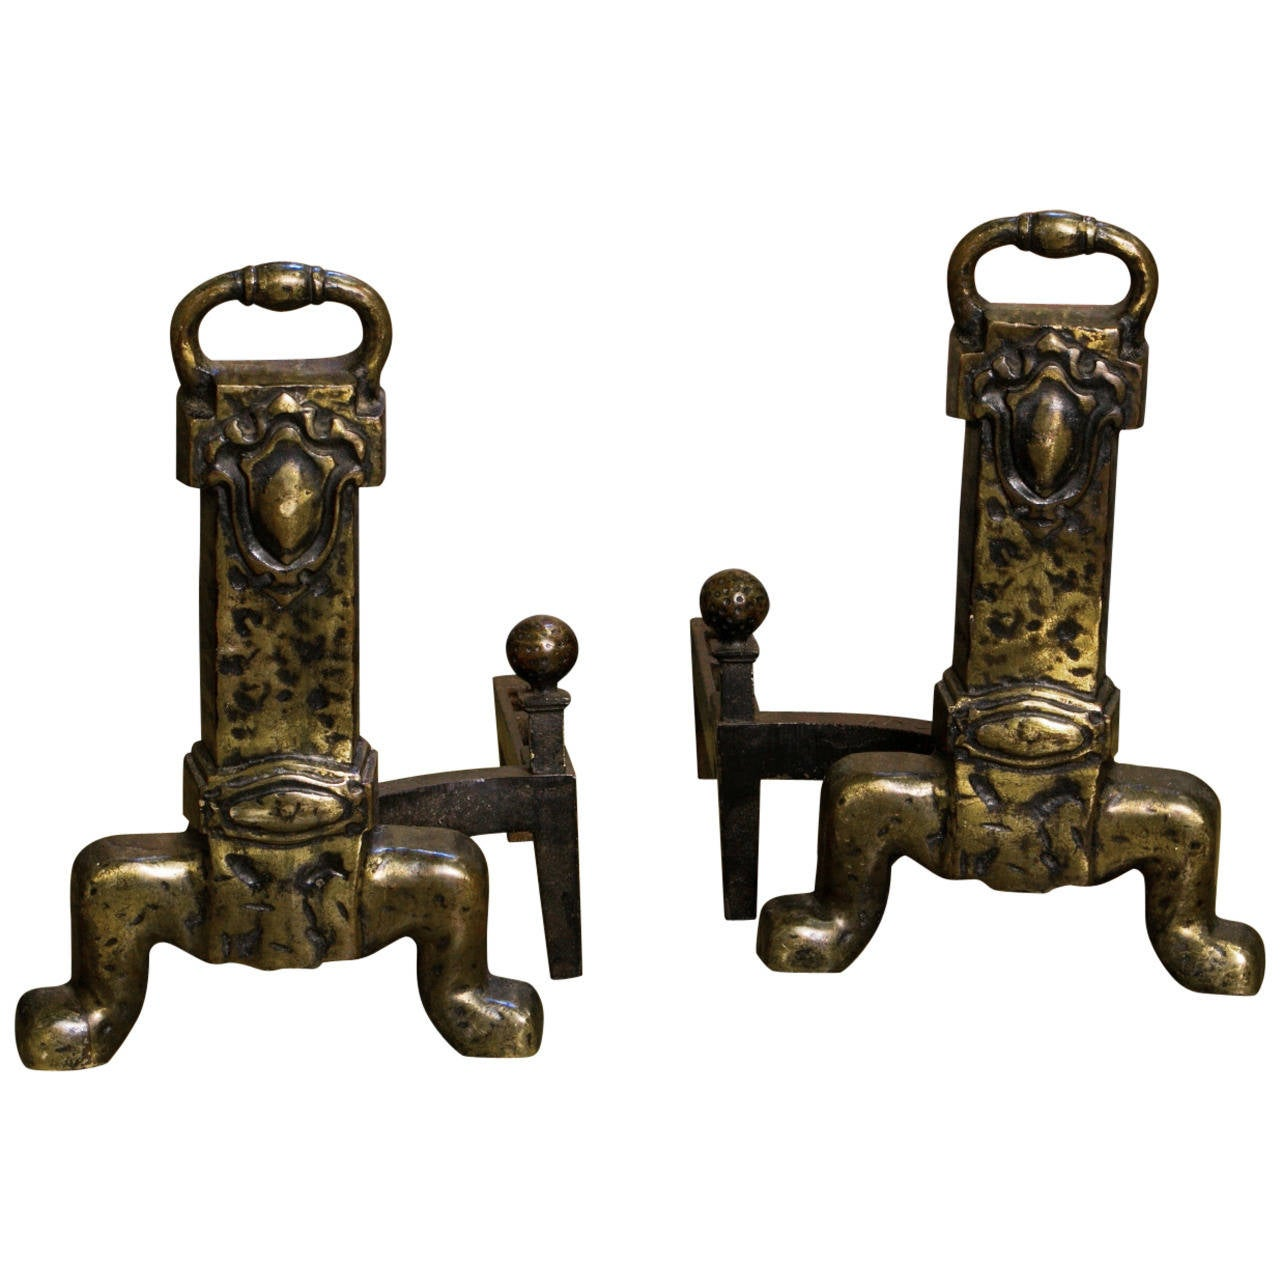 Unusual Arts & Crafts Style Bronze Andirons from Belgium, circa 1930 1